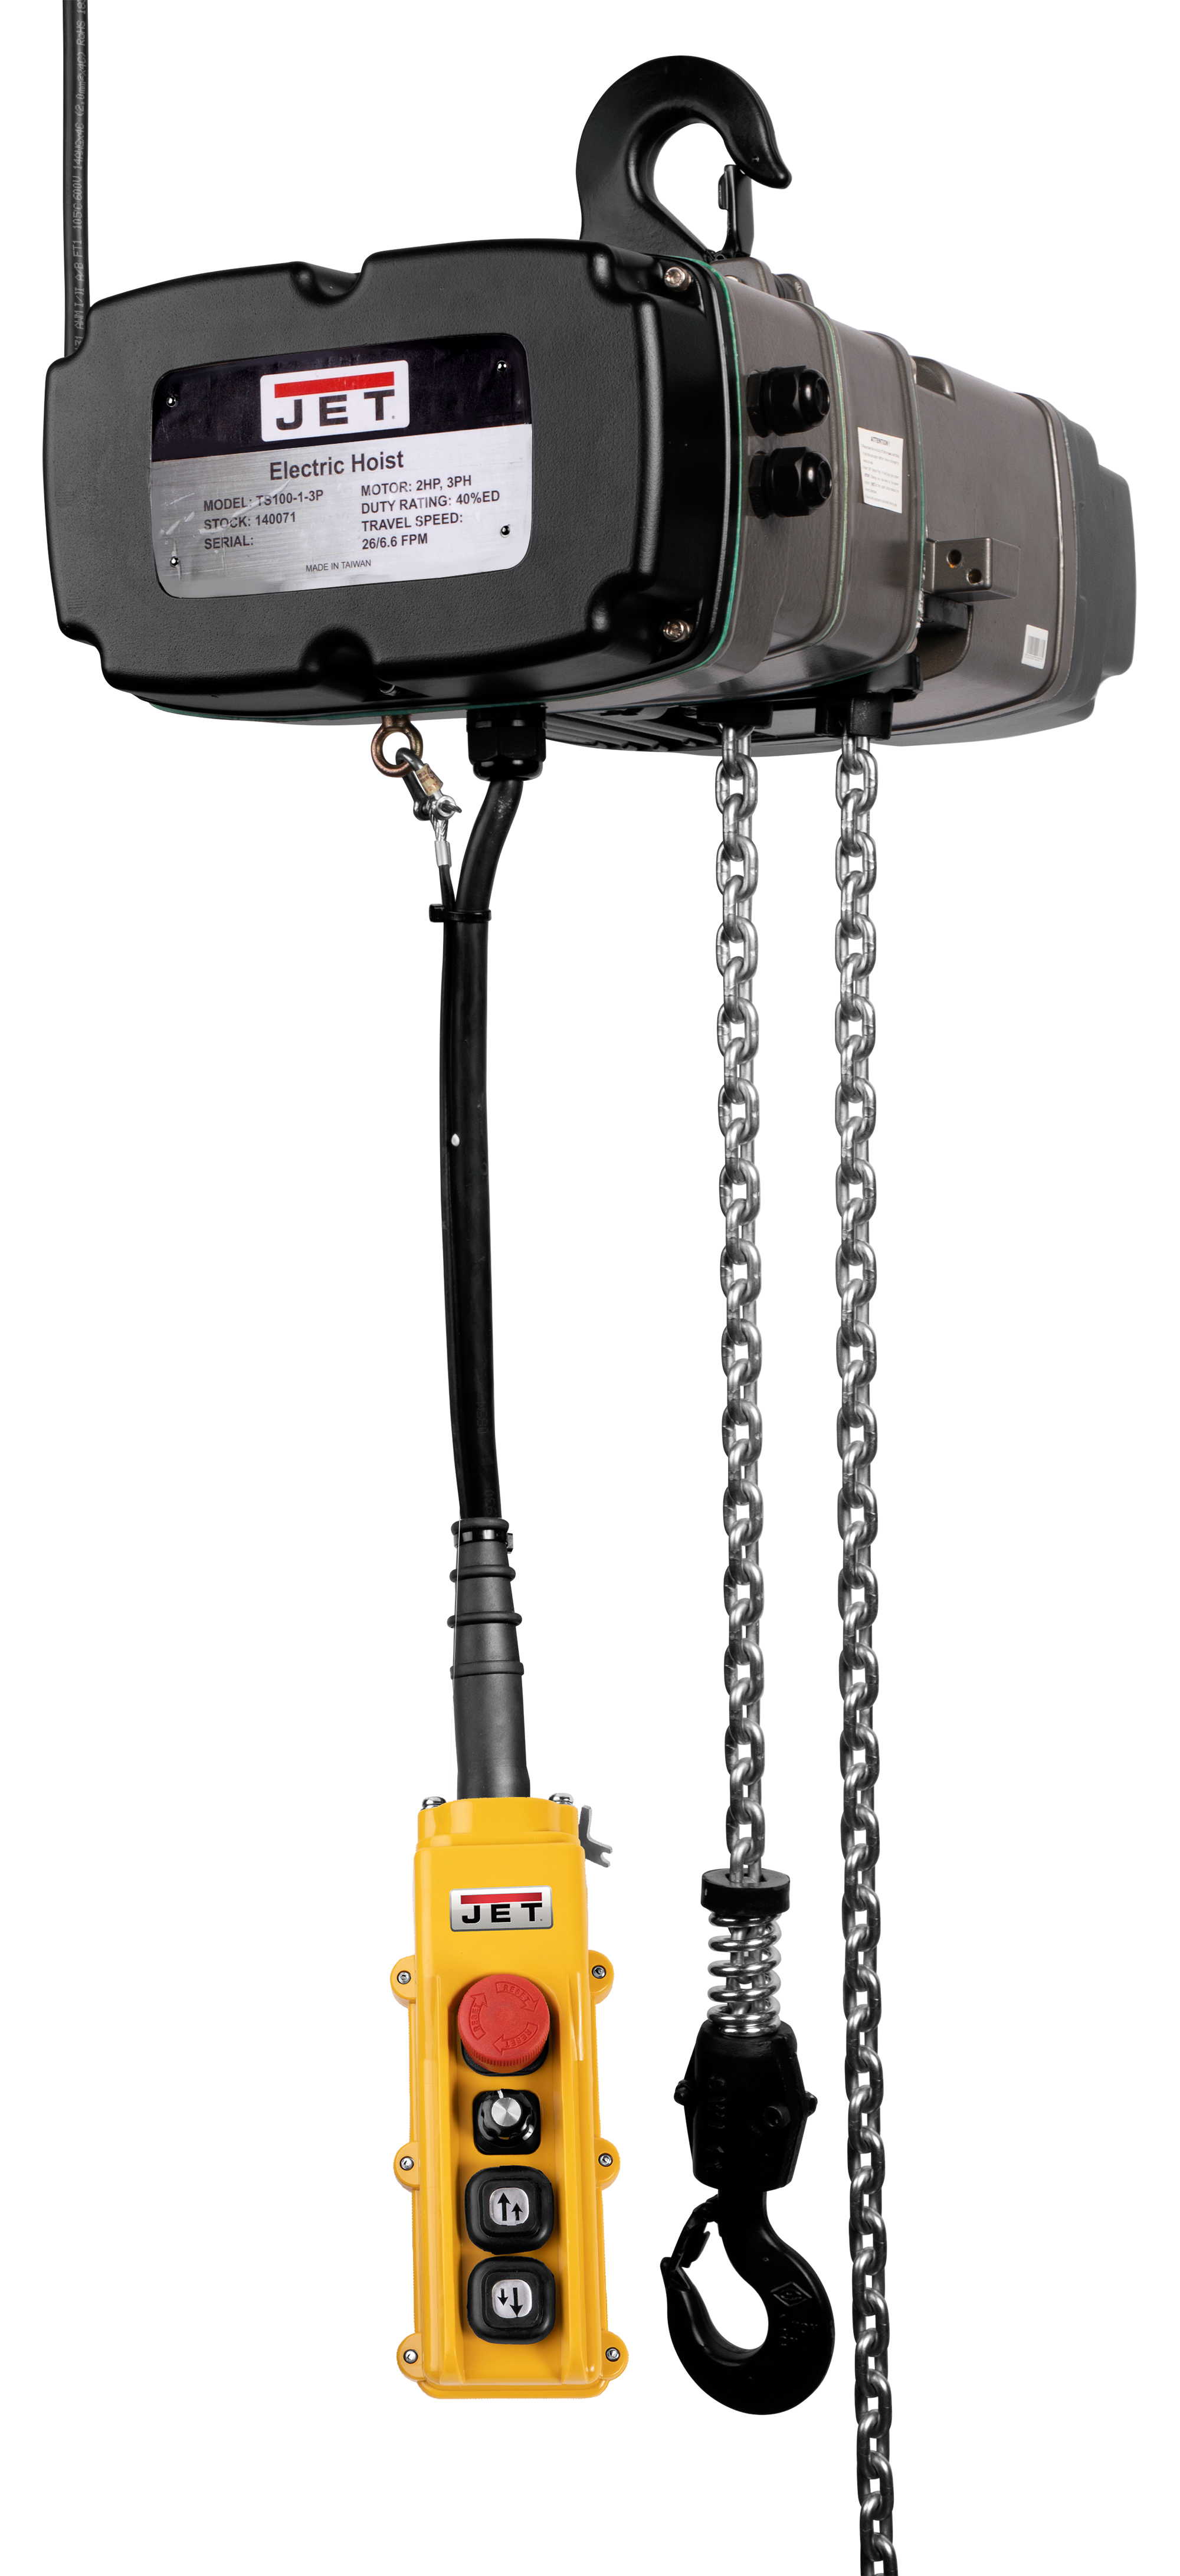 TS300-460-20, 3-Ton Two Speed Electric Chain Hoist  3-Phase 20' Lift